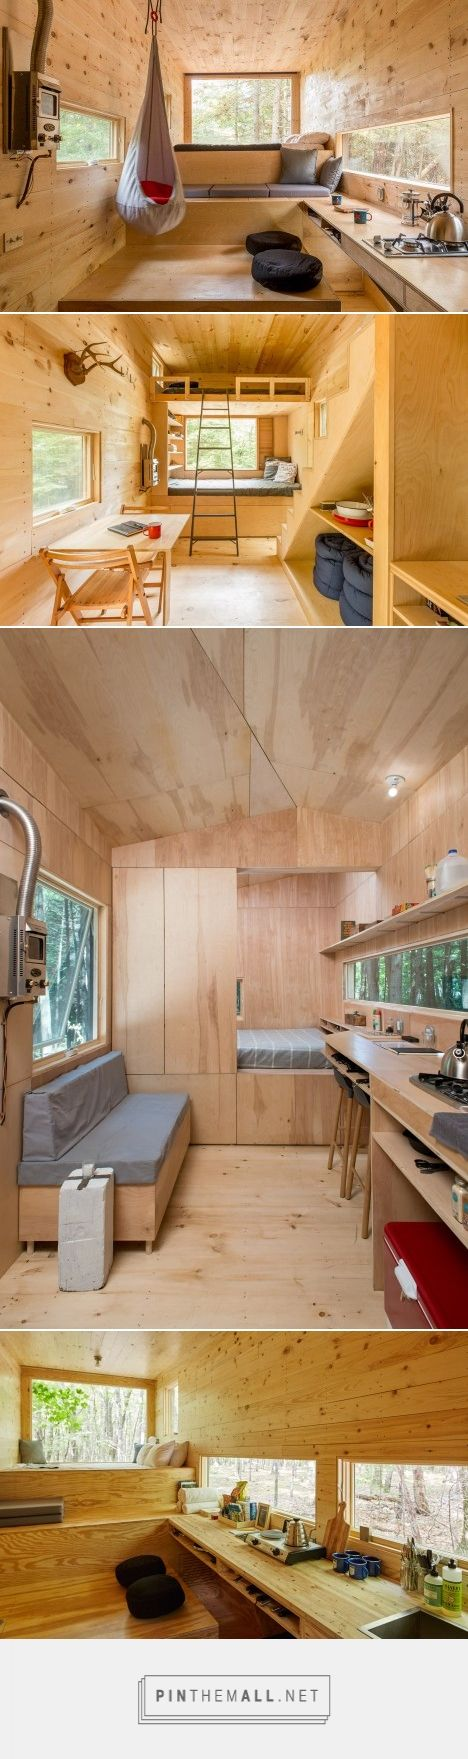 Harvard students create holiday micro cabins for city dwellers - created via…